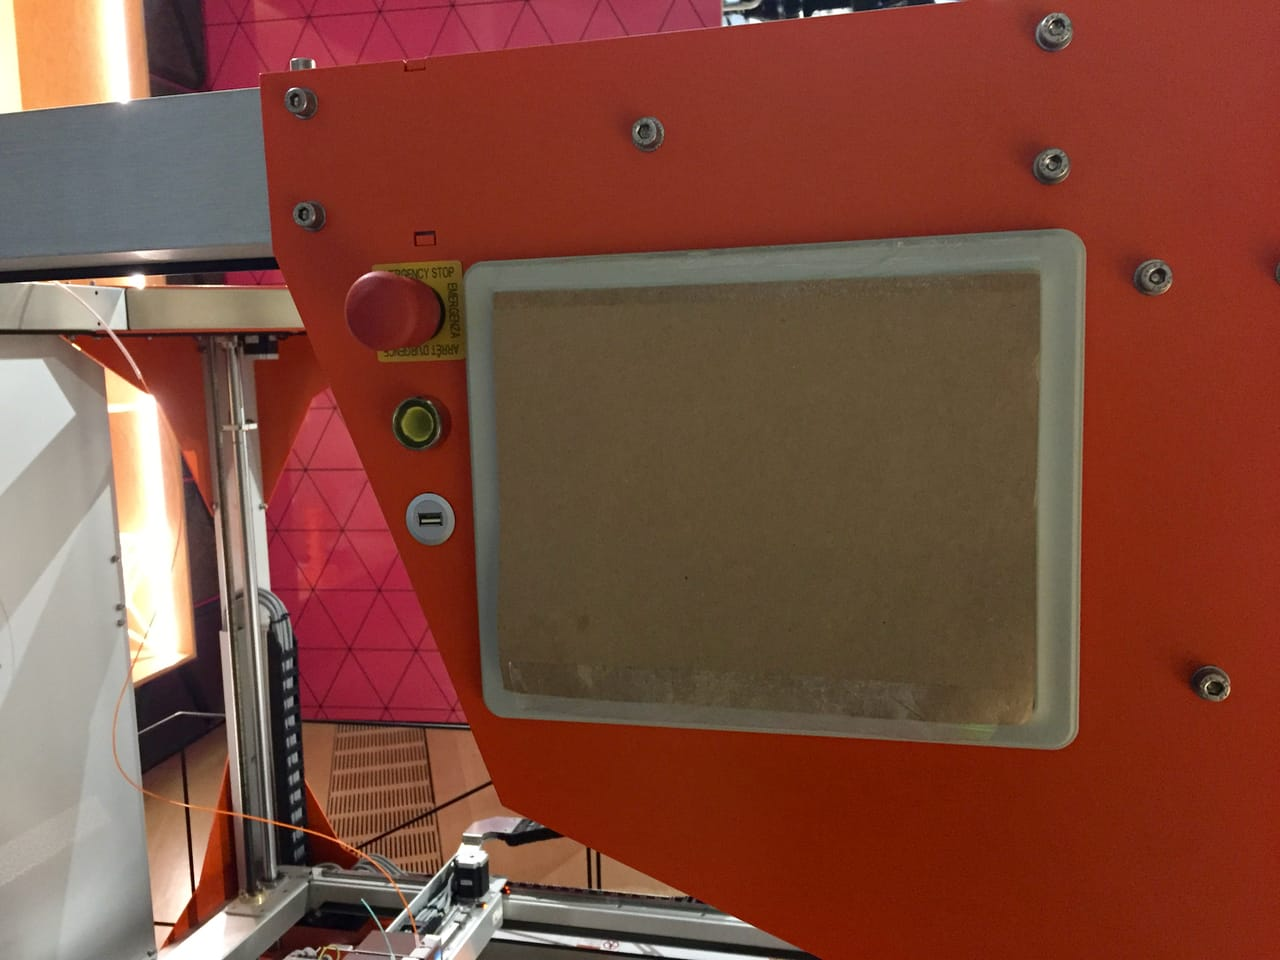 The Design Museum smartly covers up their BigRep's control panel